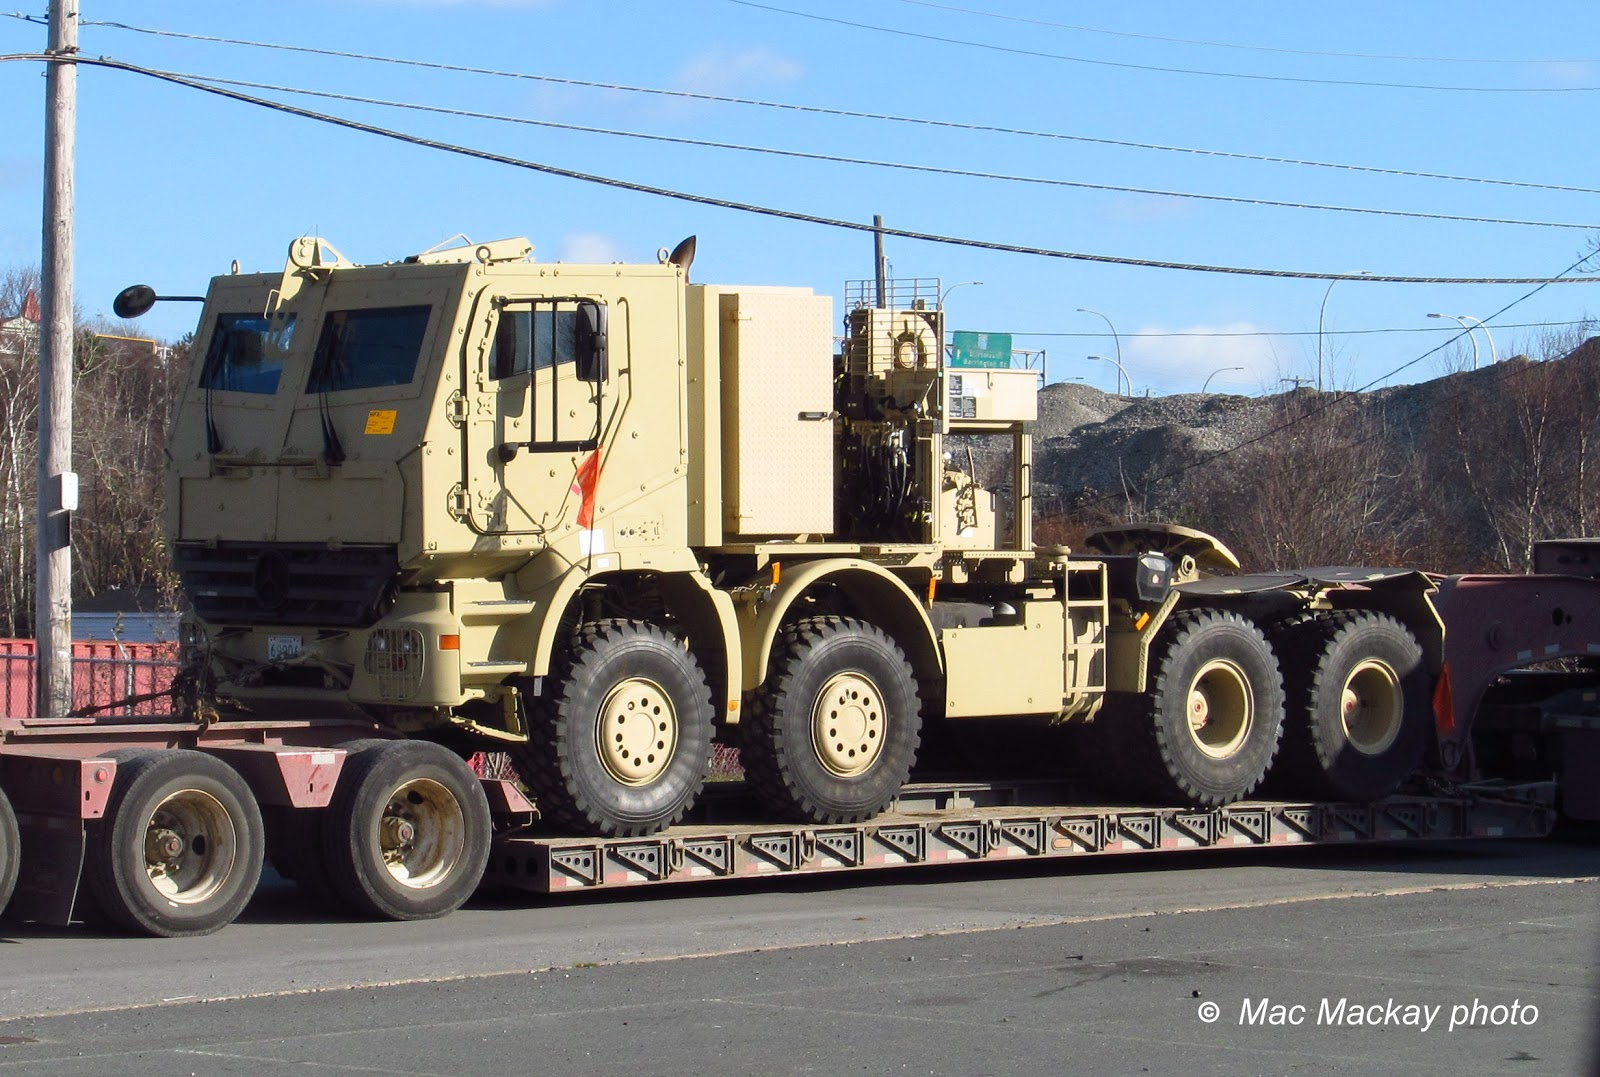 1000+ images about Military transport on Pinterest